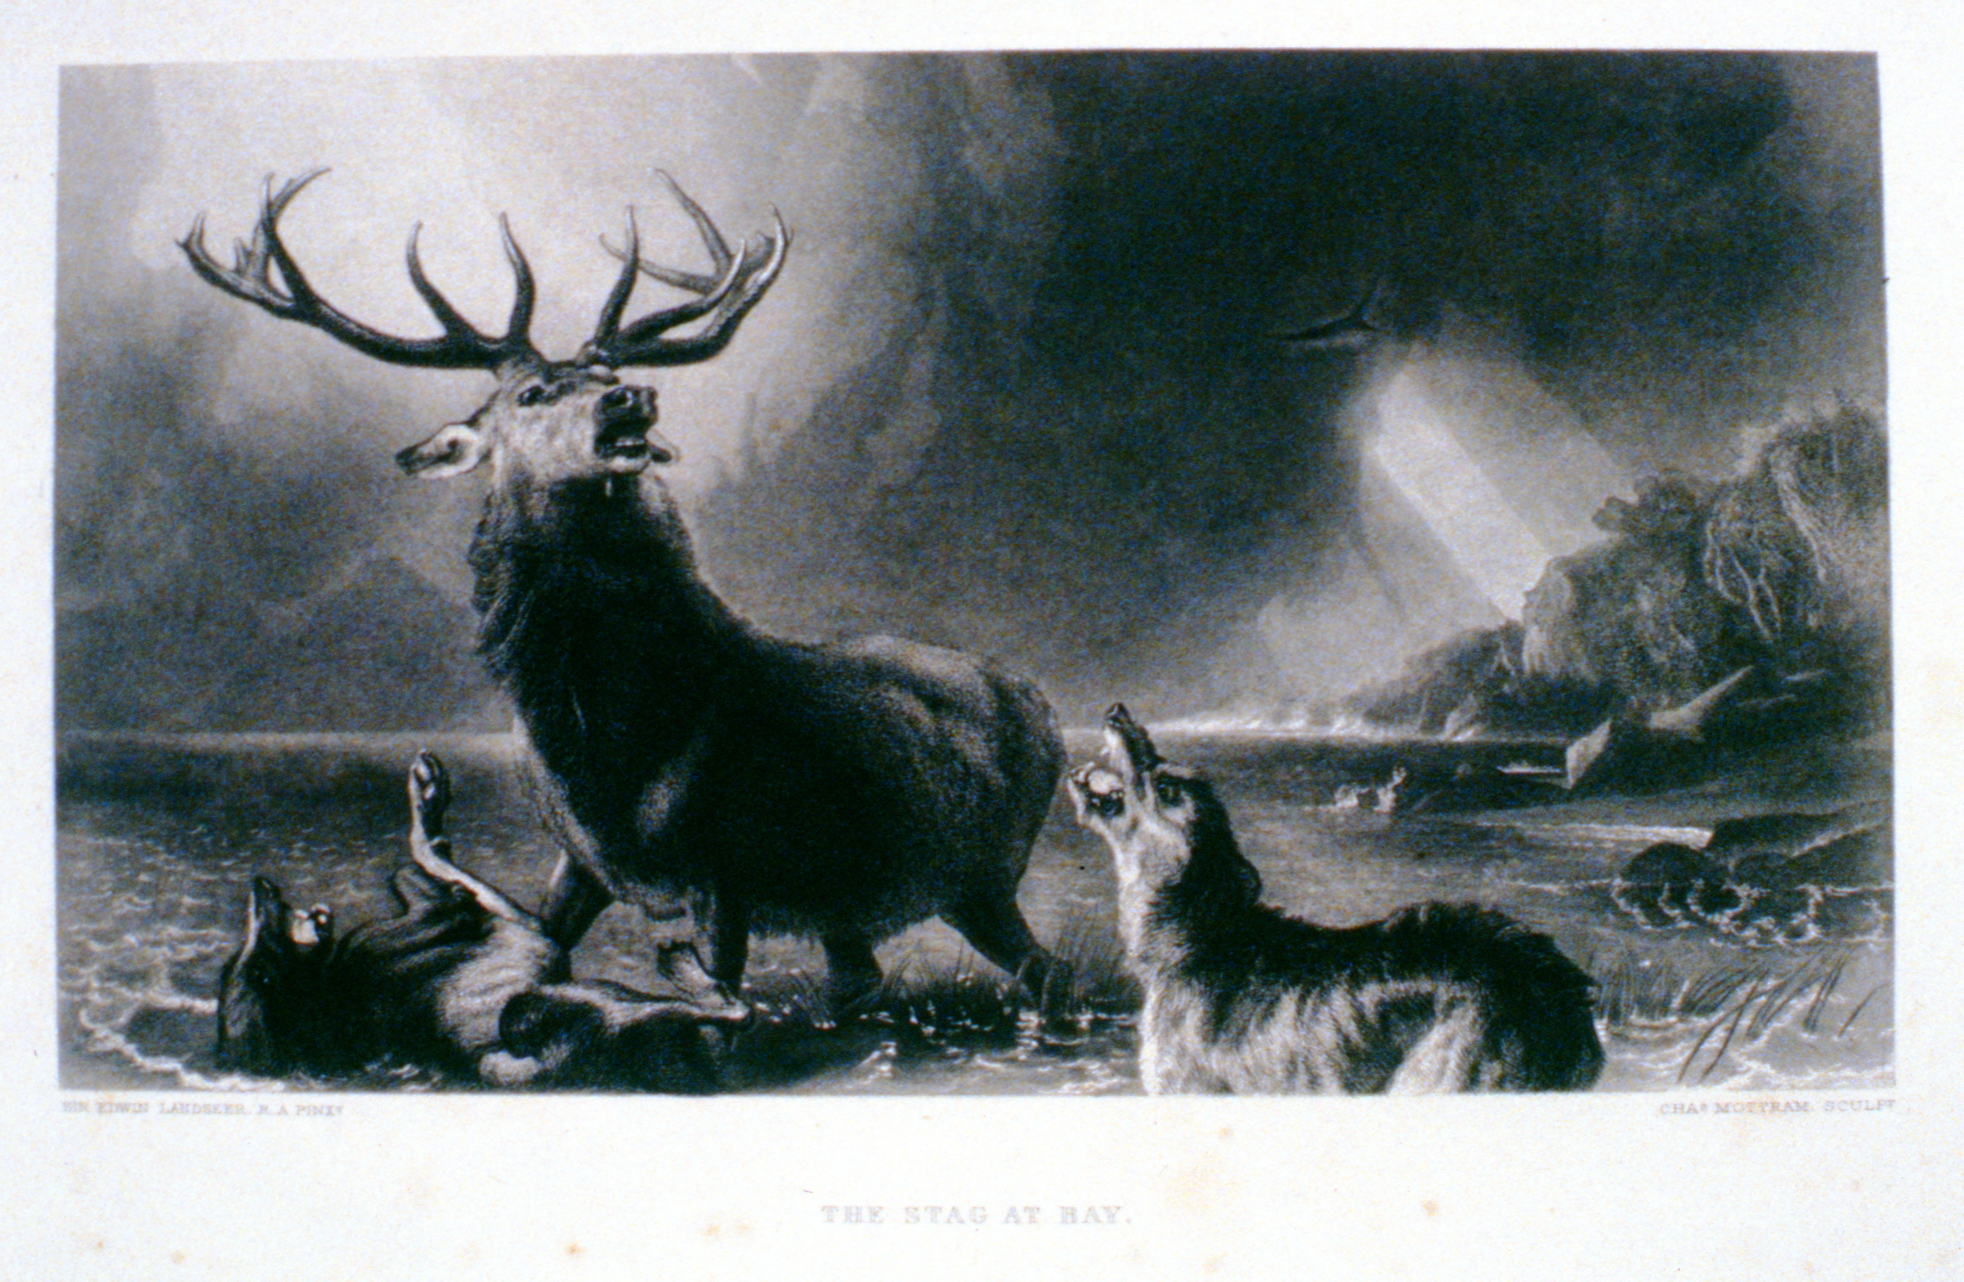 The Stag at Bay , c. late 19th Century, Charles Mottram, steel engraving, 28 cm x 15.7 cm, 1996.08.01, gift of Yvonne Adams